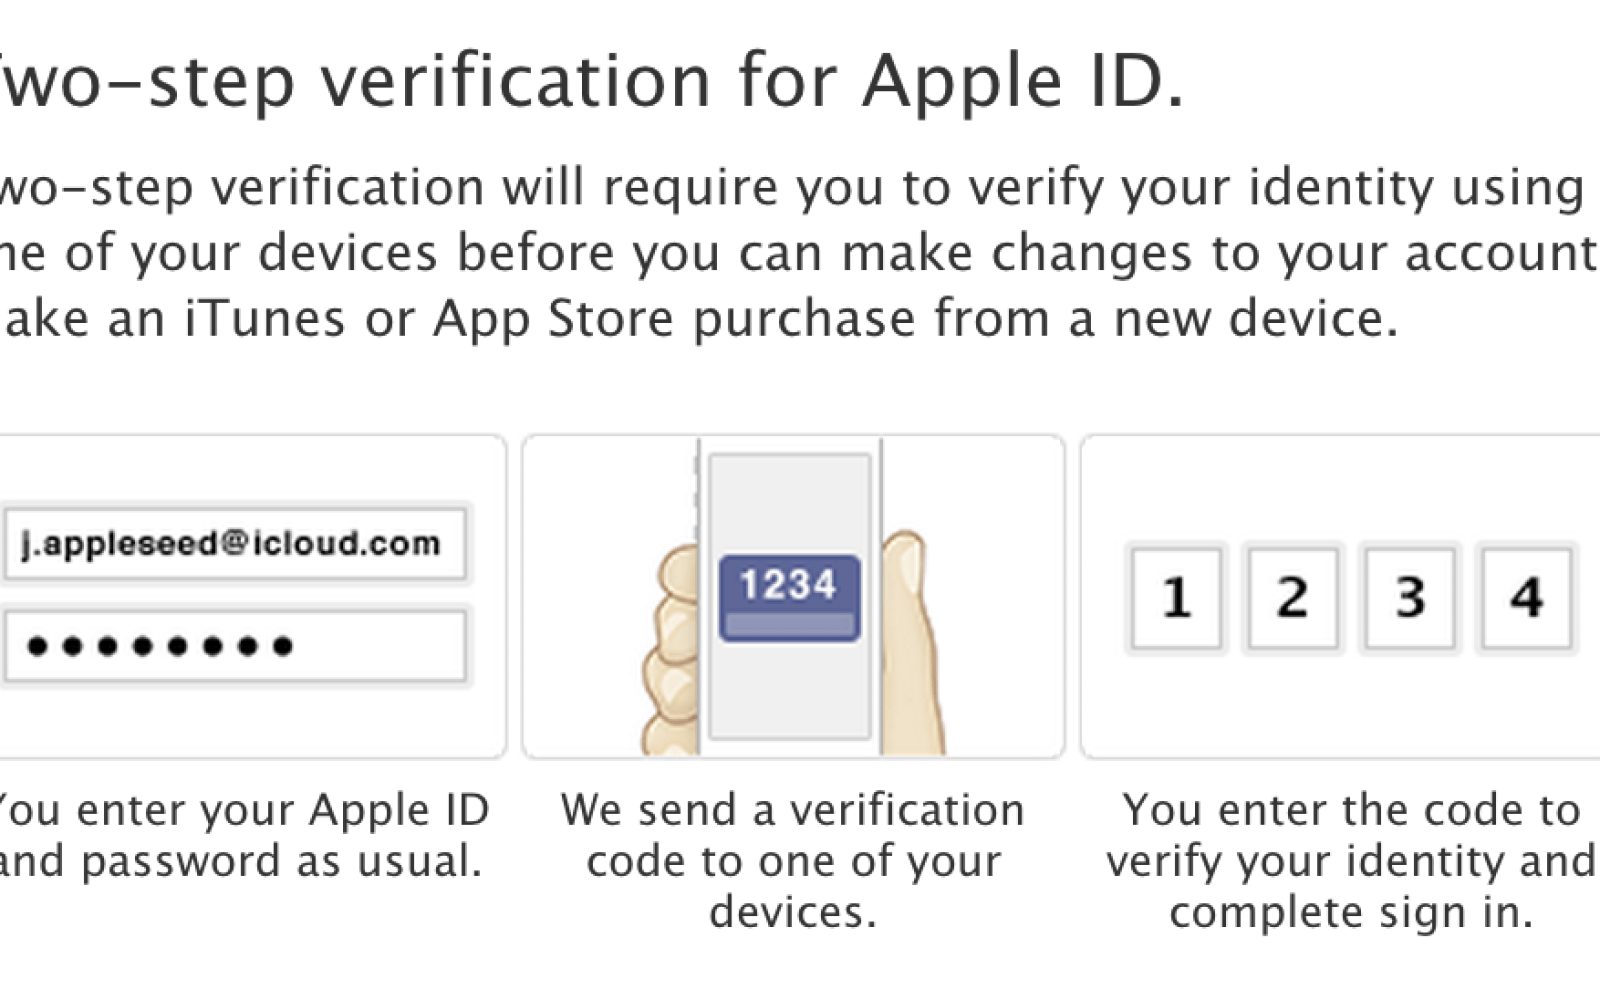 Apple's two-step verification rolling out to additional countries